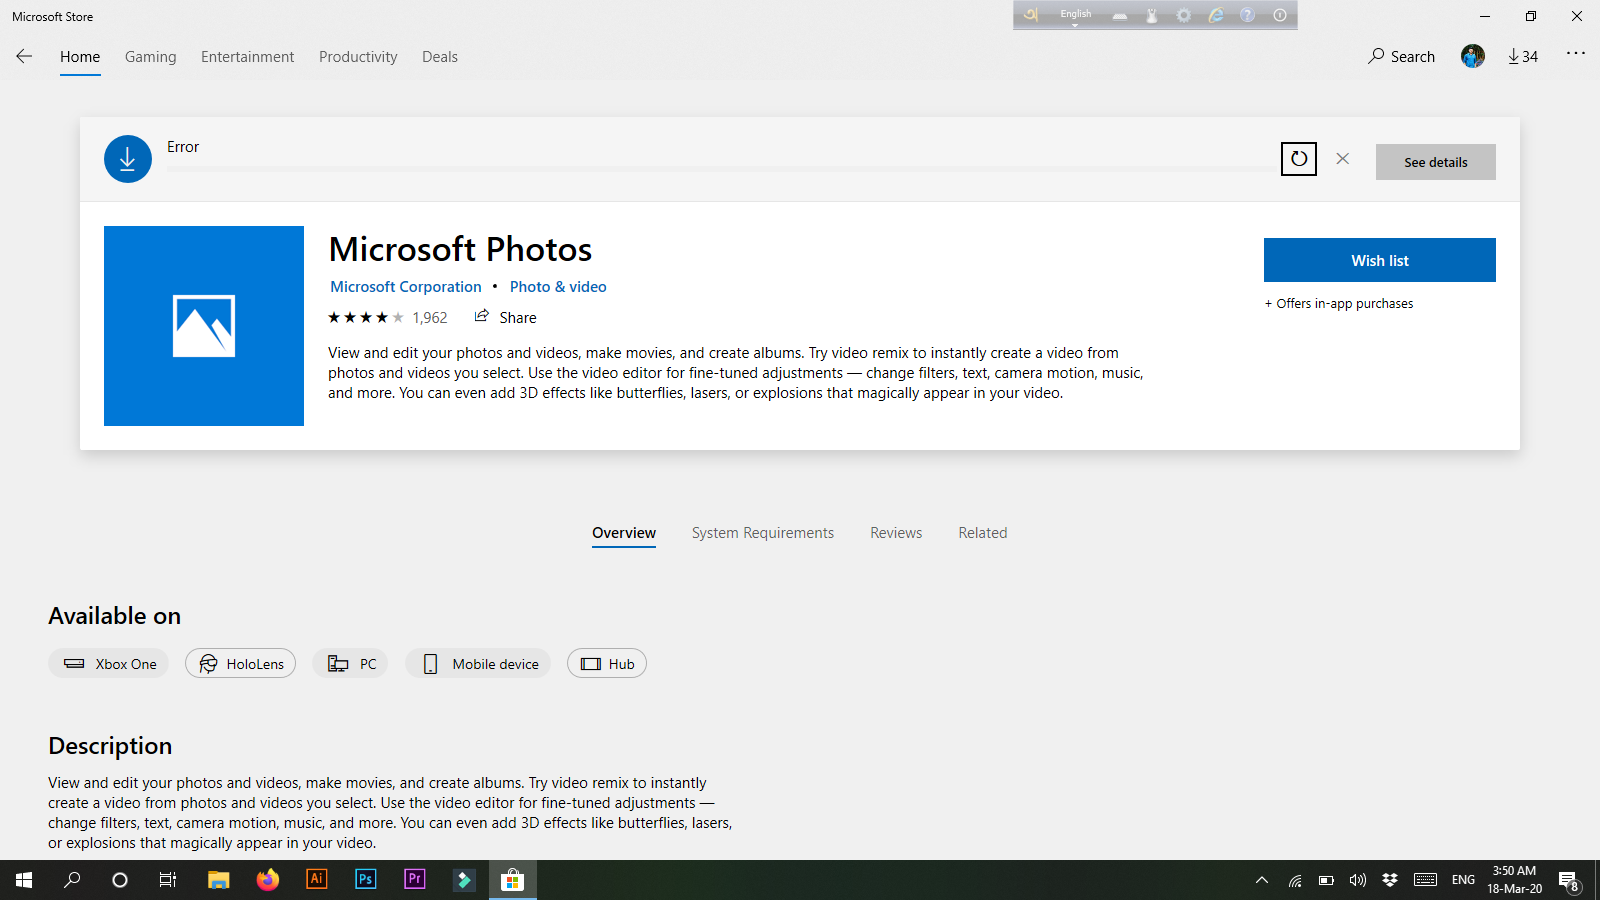 Microsoft Store Apps are not working. 2c0272cb-e7a0-41ff-8f75-fdeb7b513efd?upload=true.png